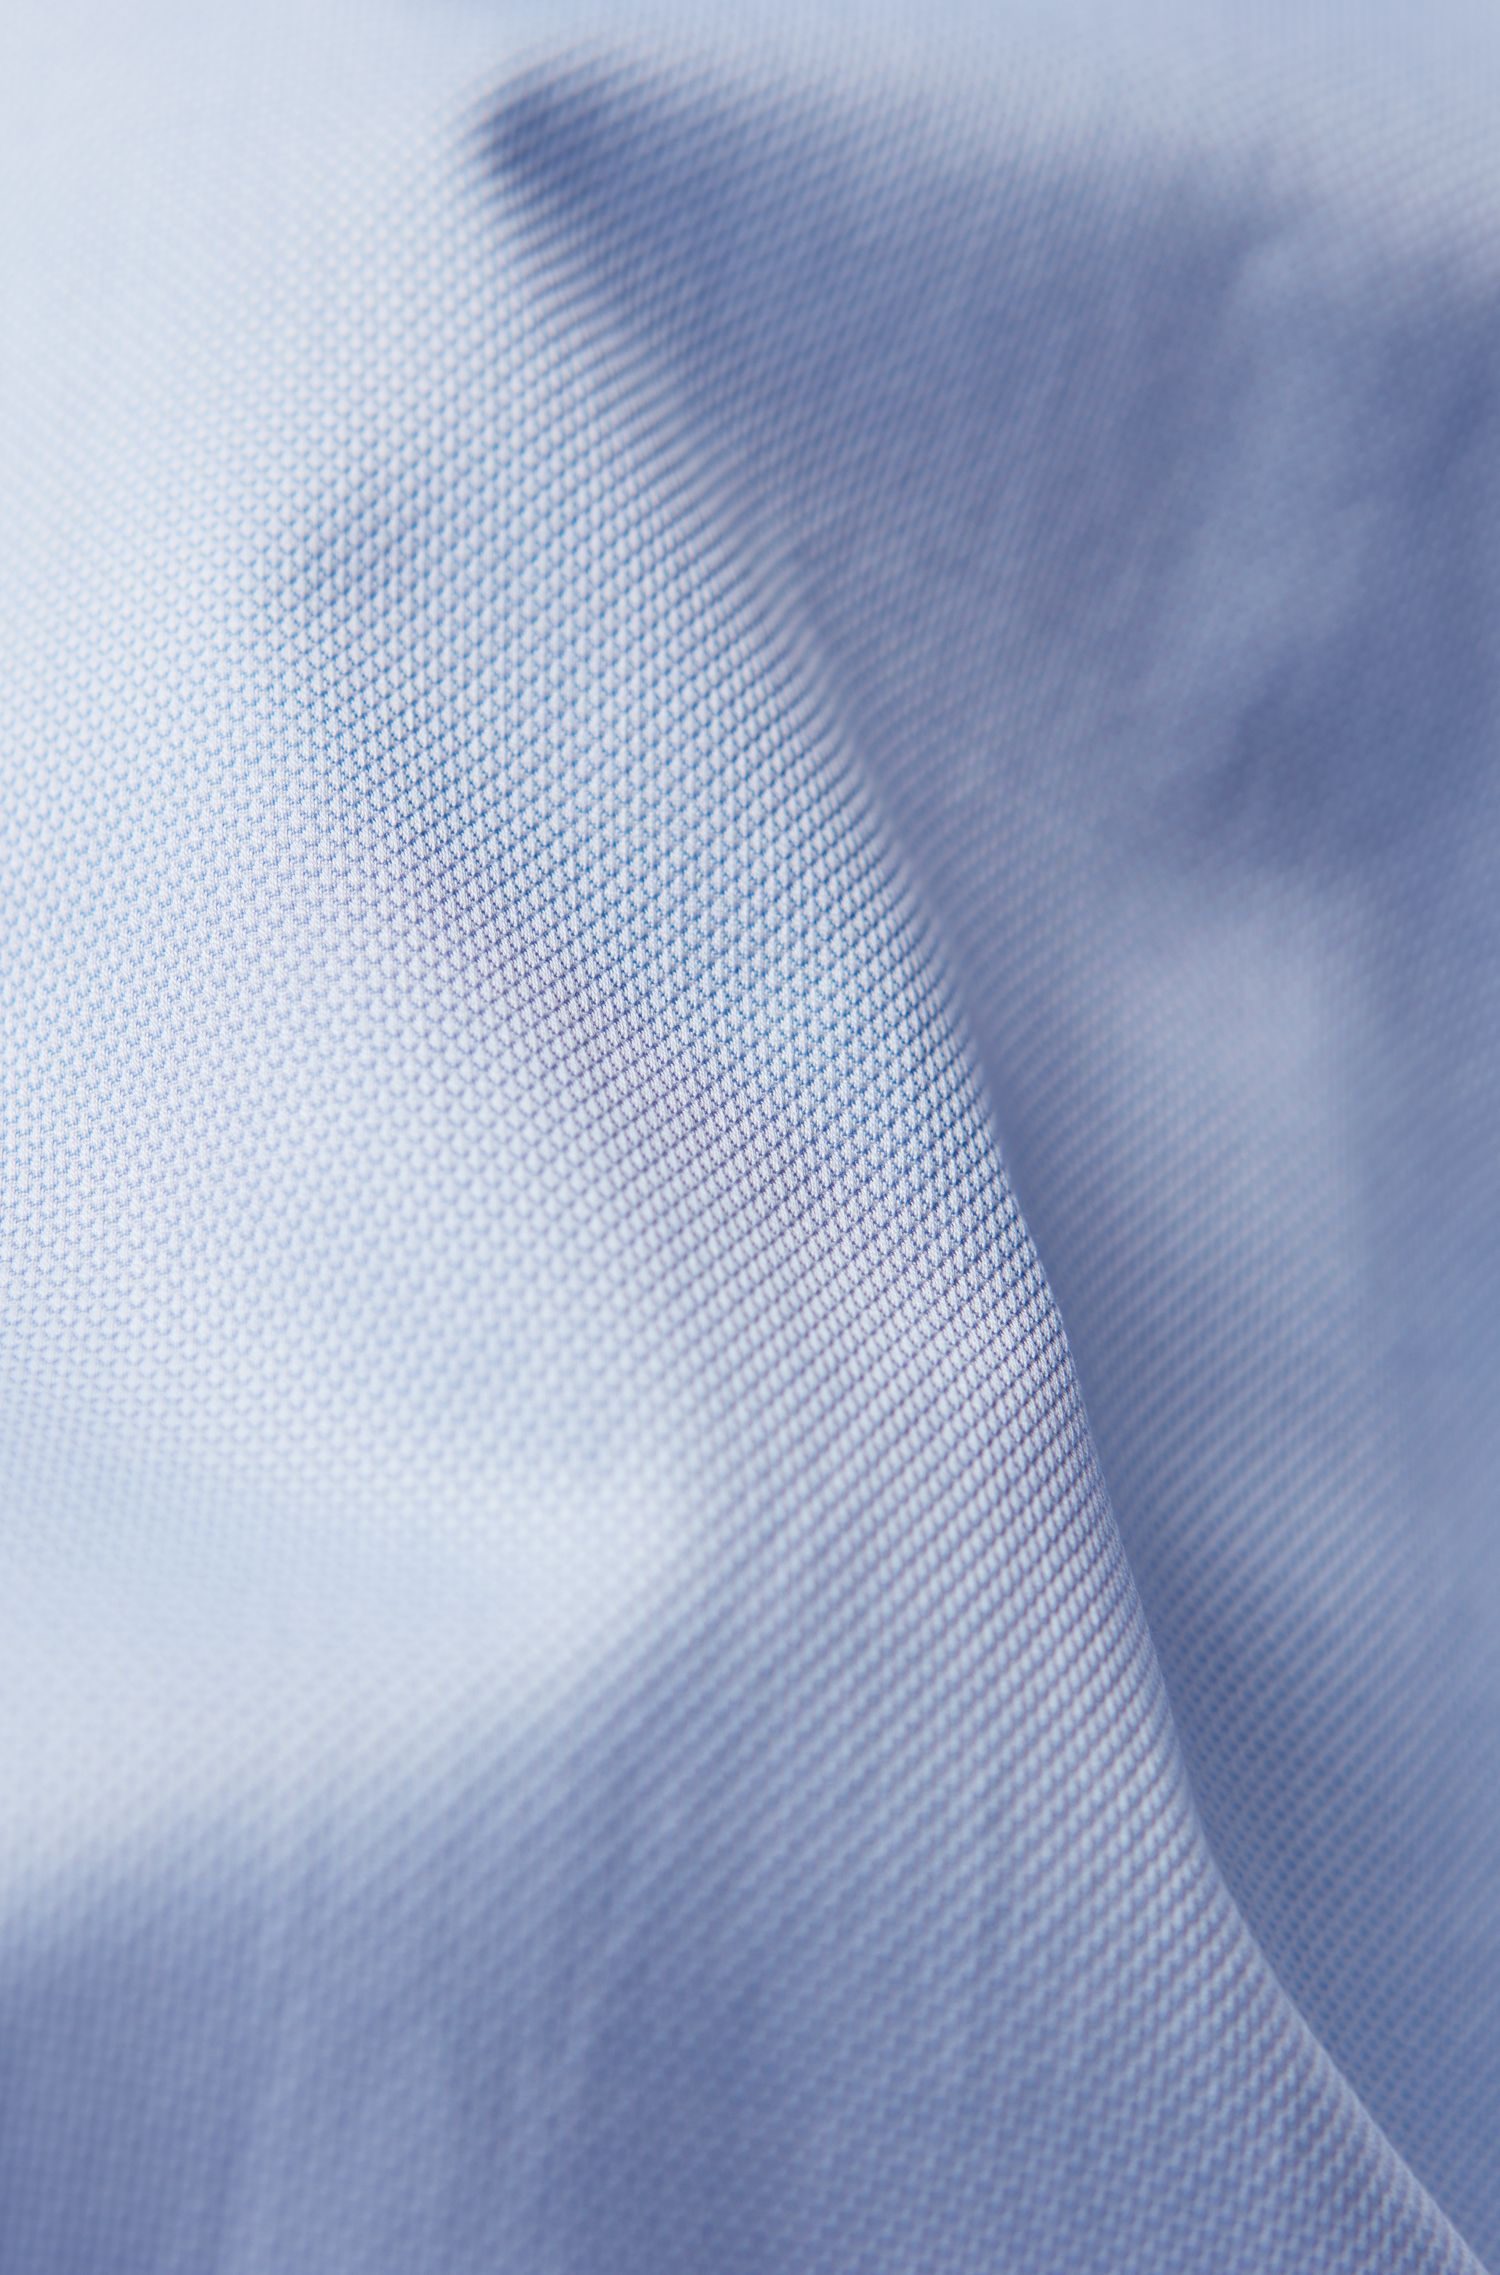 Regular-fit shirt in micro-structured Italian cotton, Light Blue